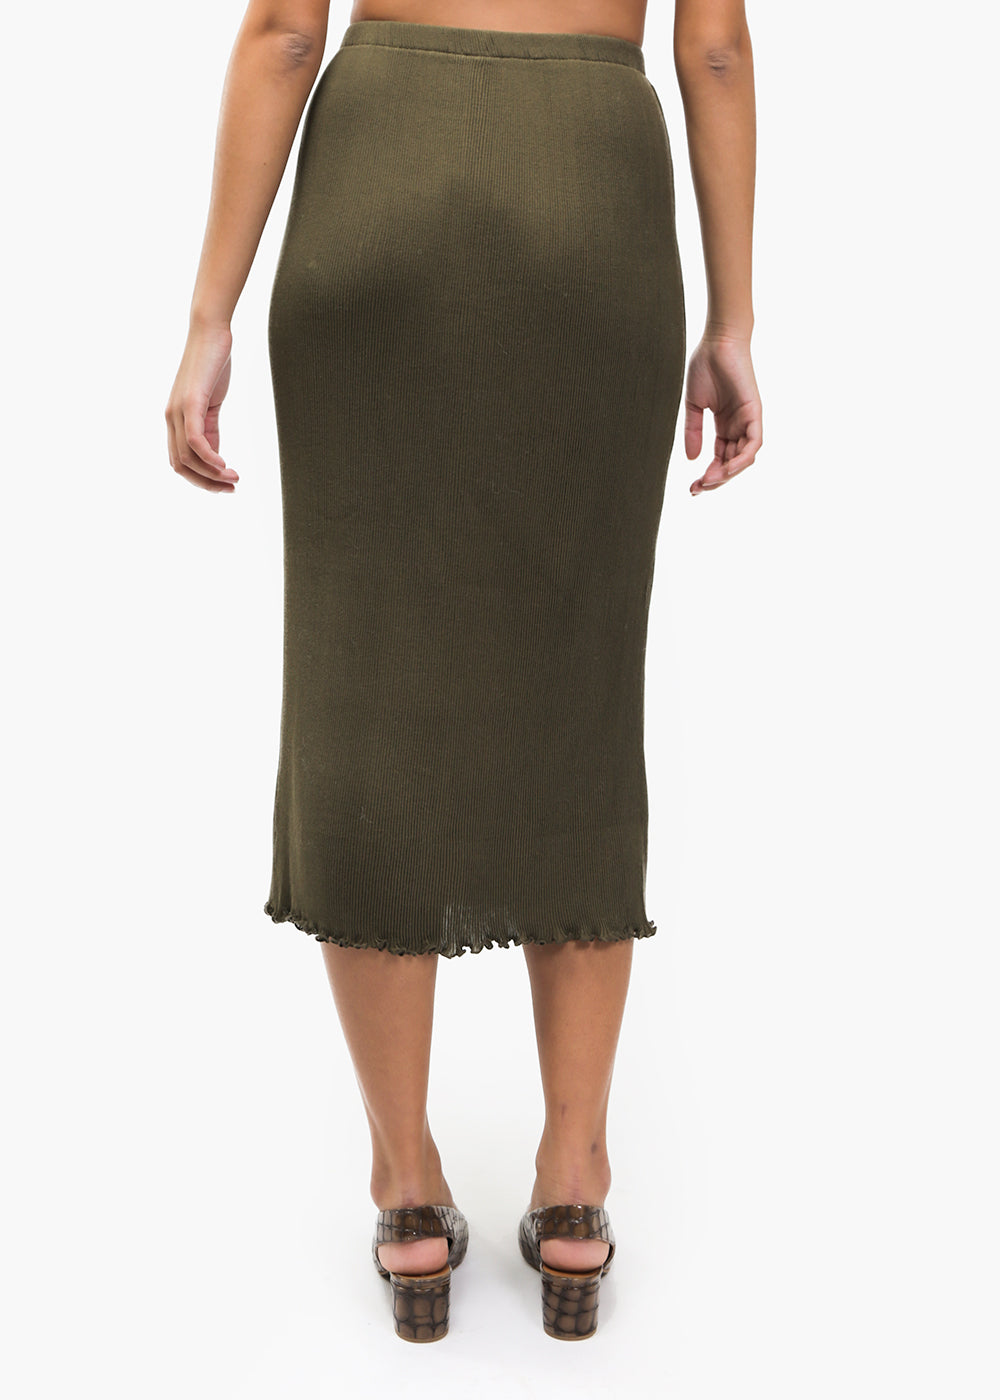 Olive Accordion Skirt - New Classics Studios